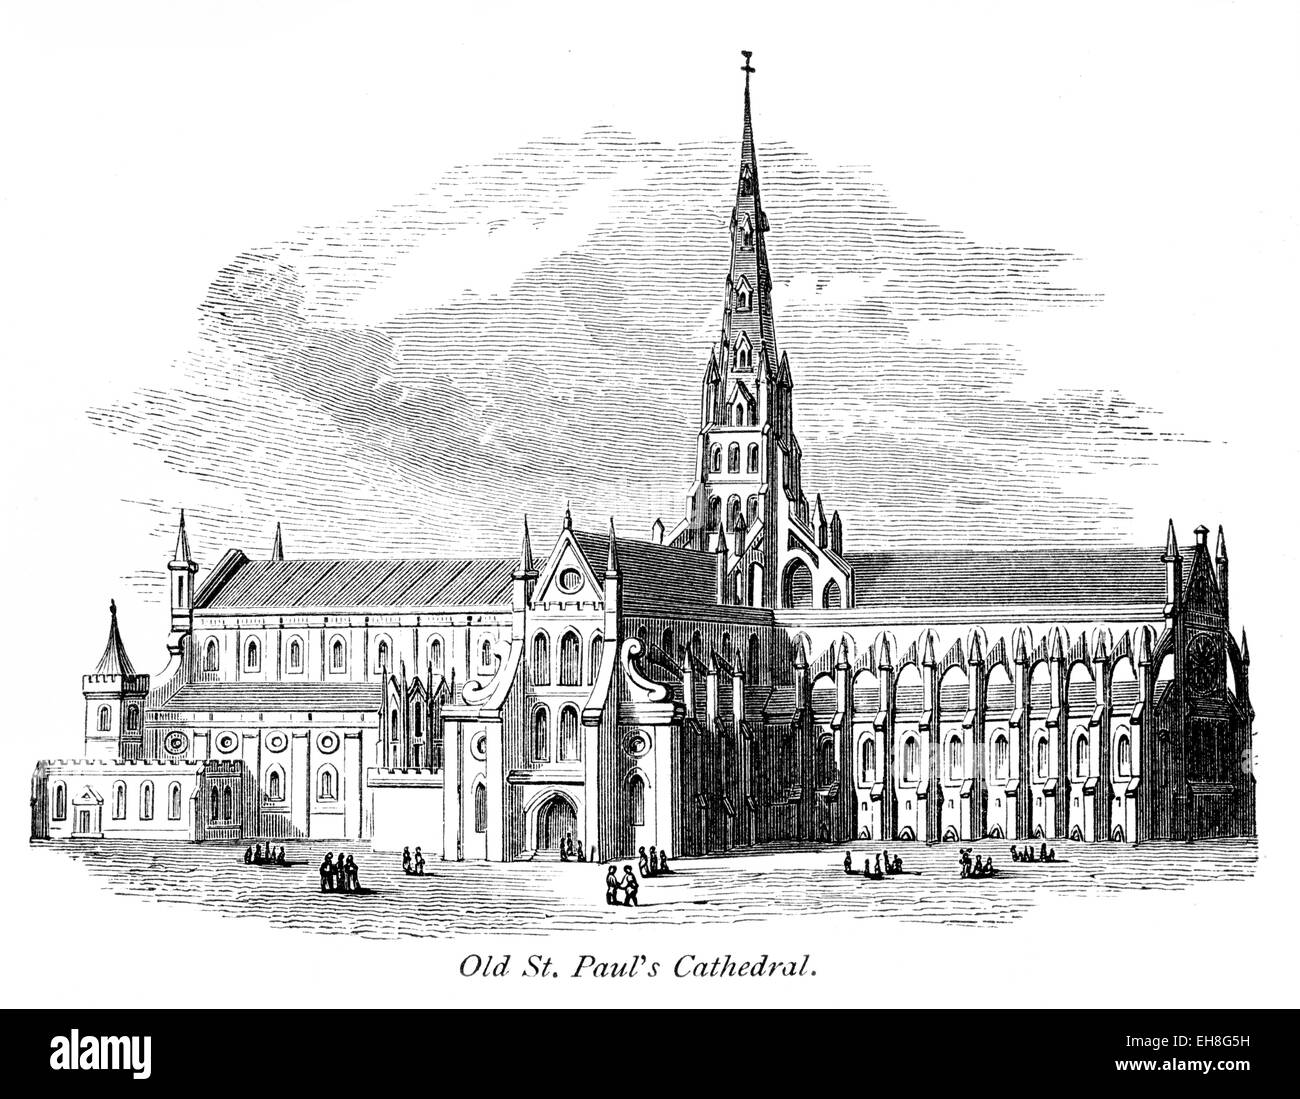 An engraving of Old St. Paul's Cathedral scanned at high resolution from a book printed in 1867. Stock Photo